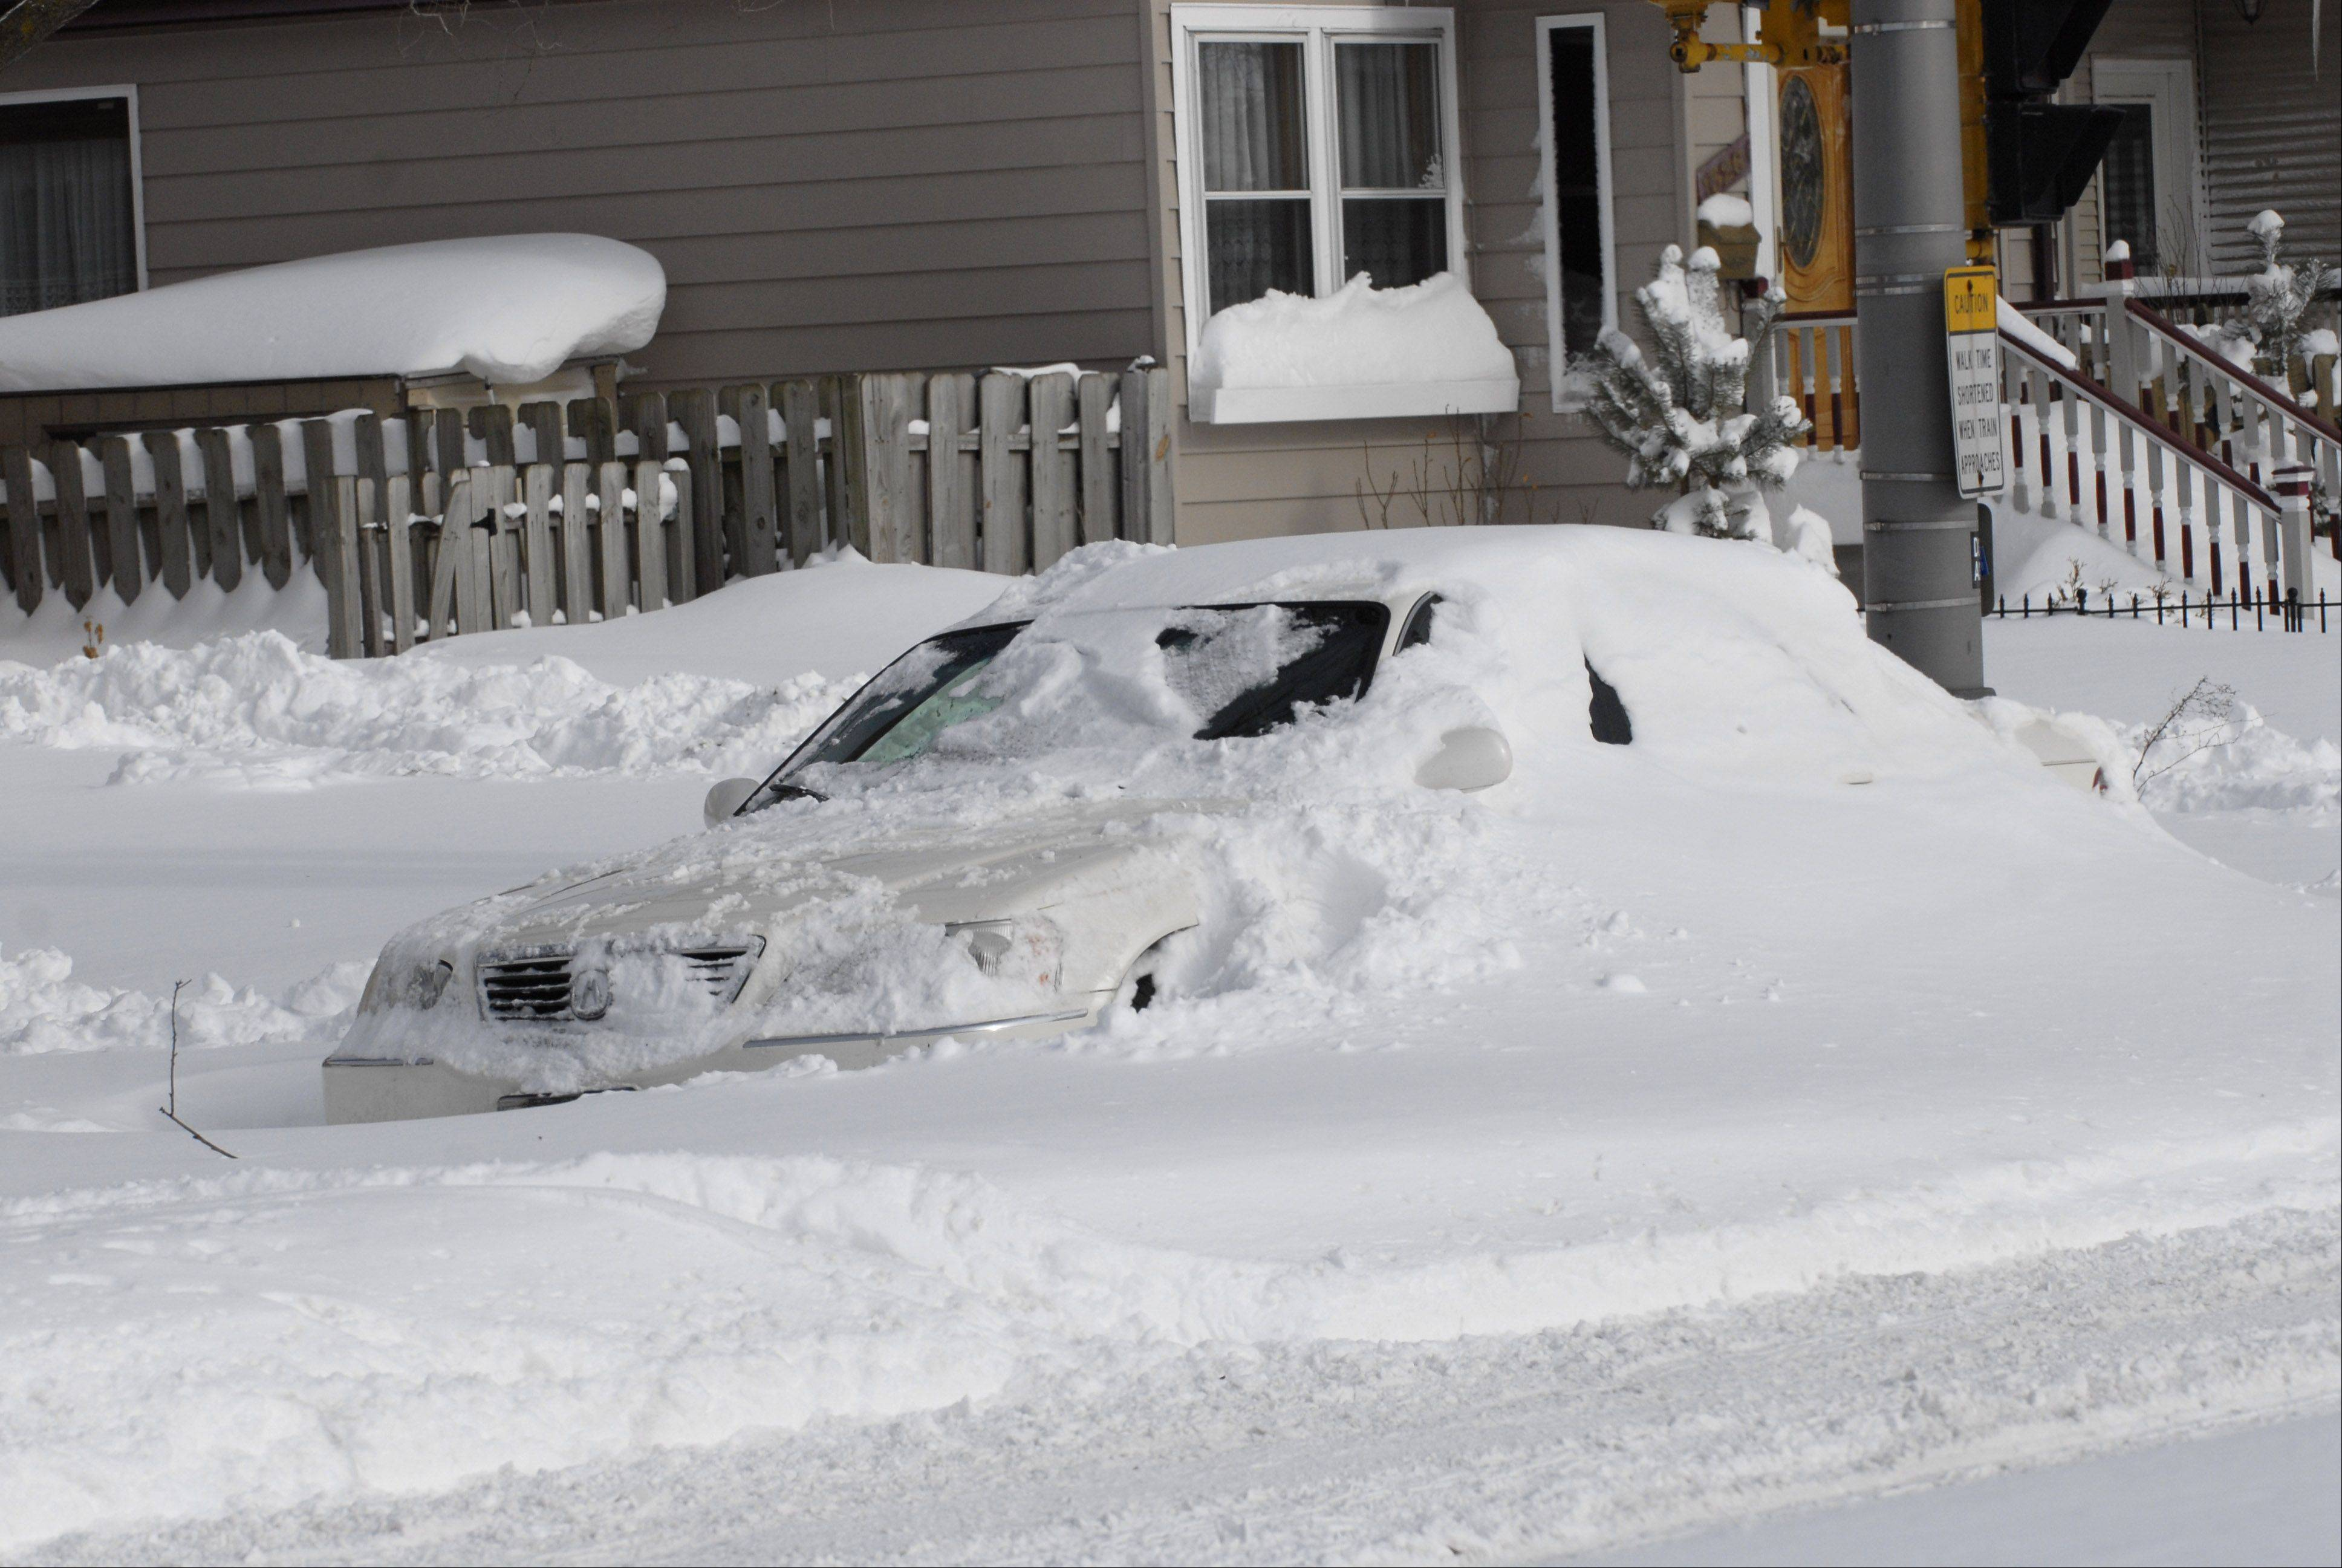 The single snowstorm that buried this car in Arlington Heights in 2011 dropped more snow in 24 hours than we've seen last winter and so far this winter combined.